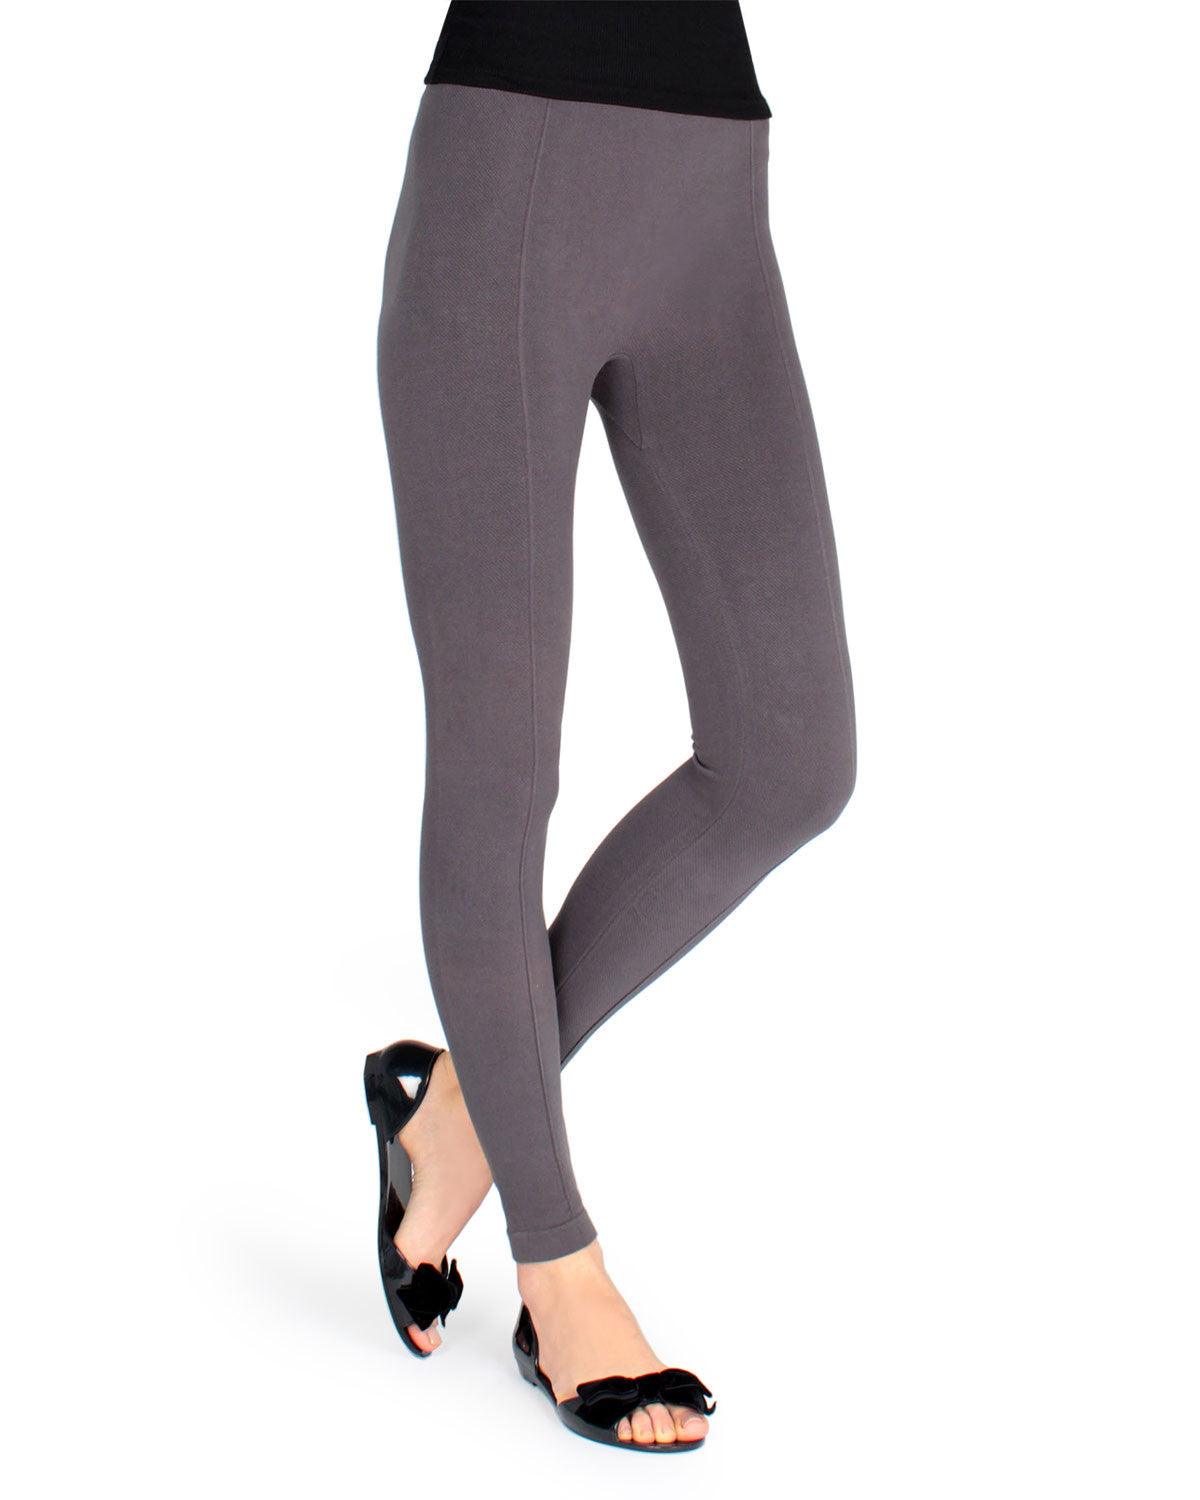 Solid Yoga Pants Sketch Knit Leggings